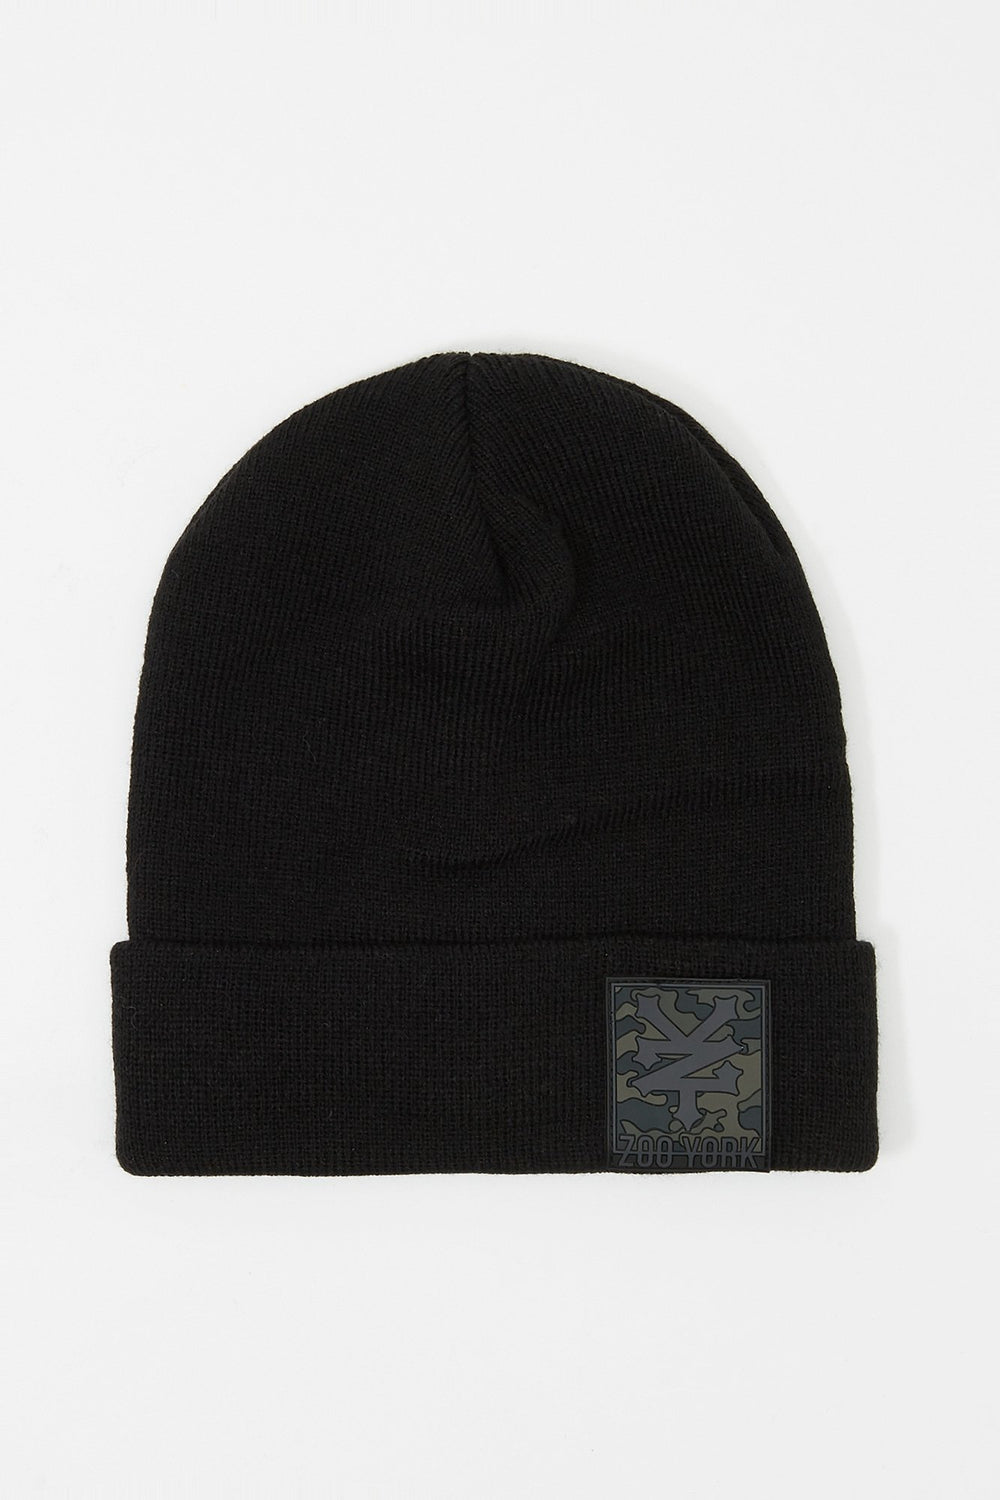 Tuque Logo Camouflage Zoo York Homme Noir